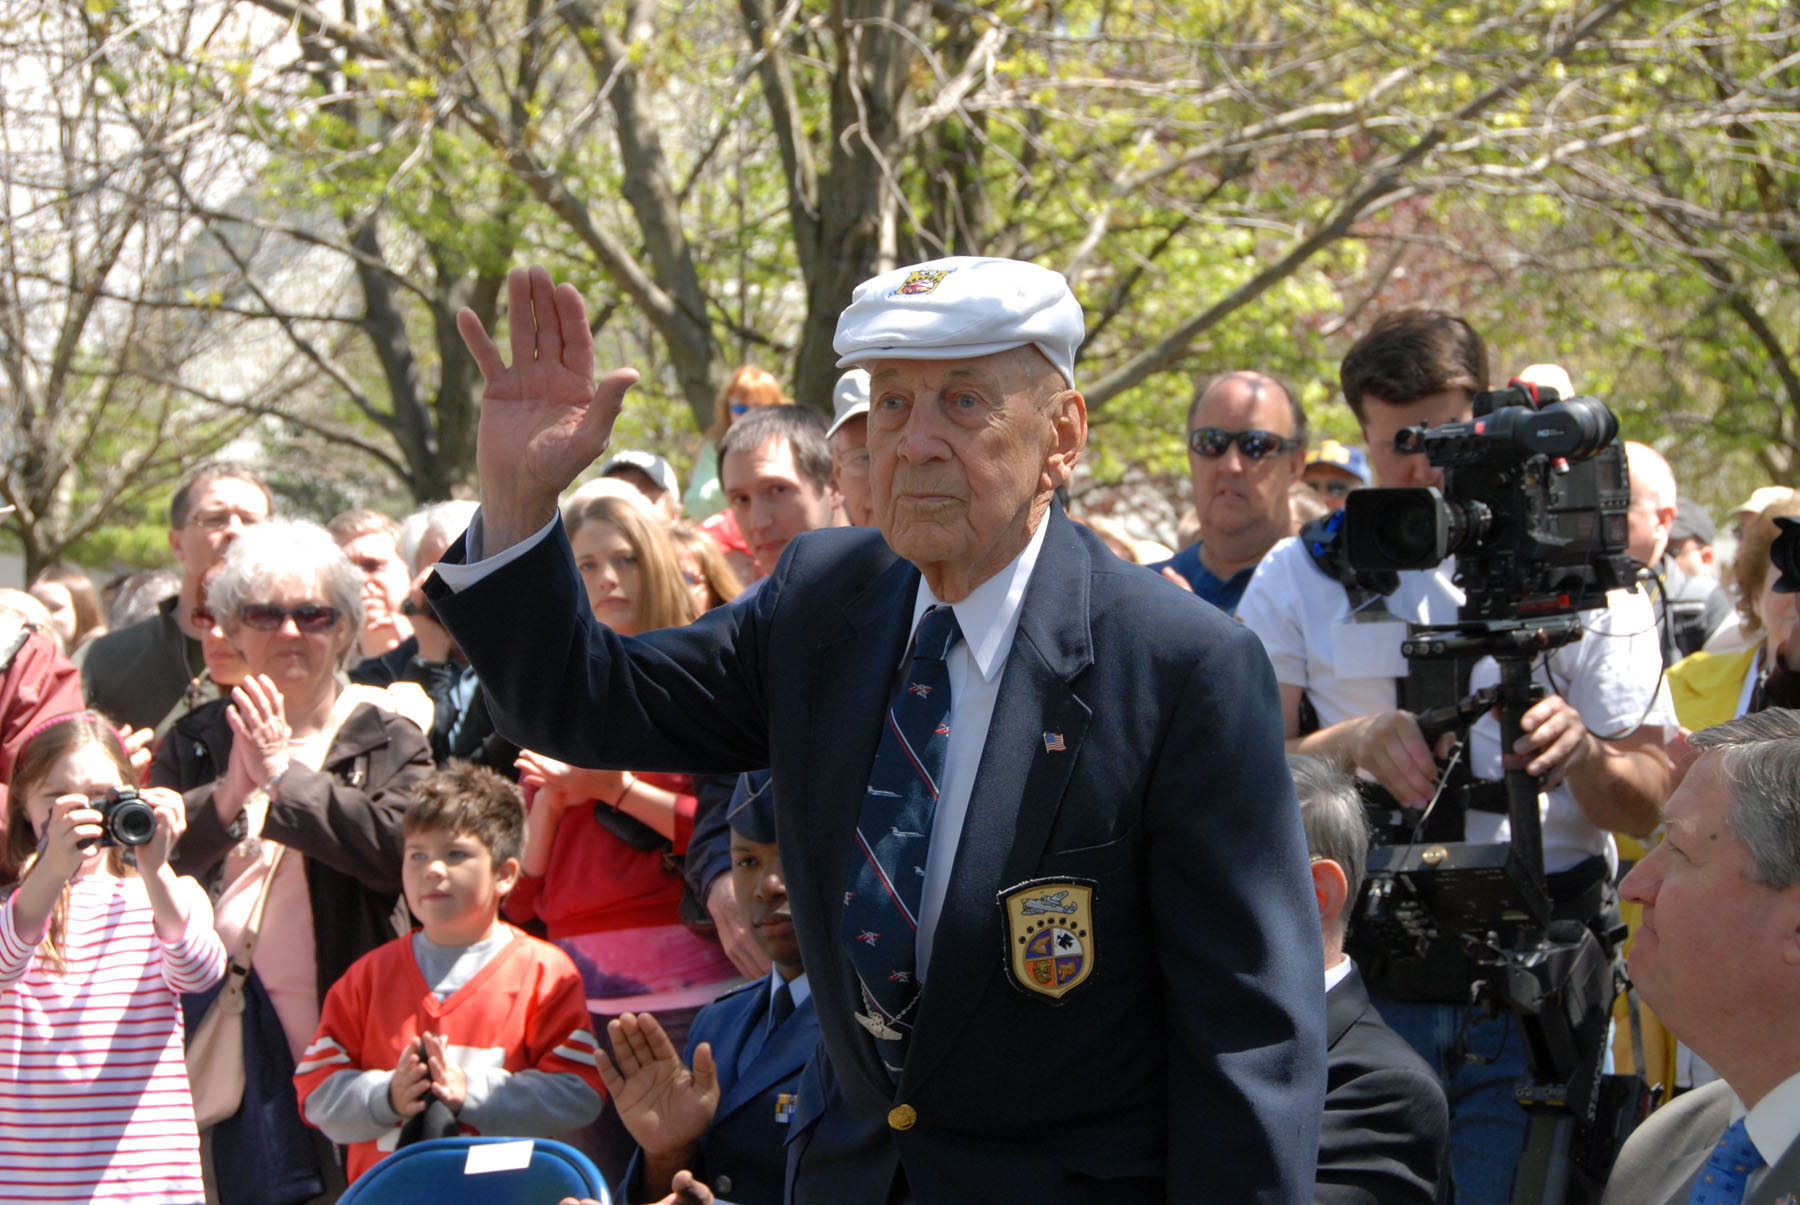 "Lt. Col. Richard ""Dick"" E. Cole, who served as Jimmy Doolittle's co-pilot on Crew No. 1. Cole, now 101 years old, plans to return to the National Museum of the U.S. Air Force in April to commemorate the 75th anniversary of the raid. (U.S. Air Force photo by Jeff Fisher)"